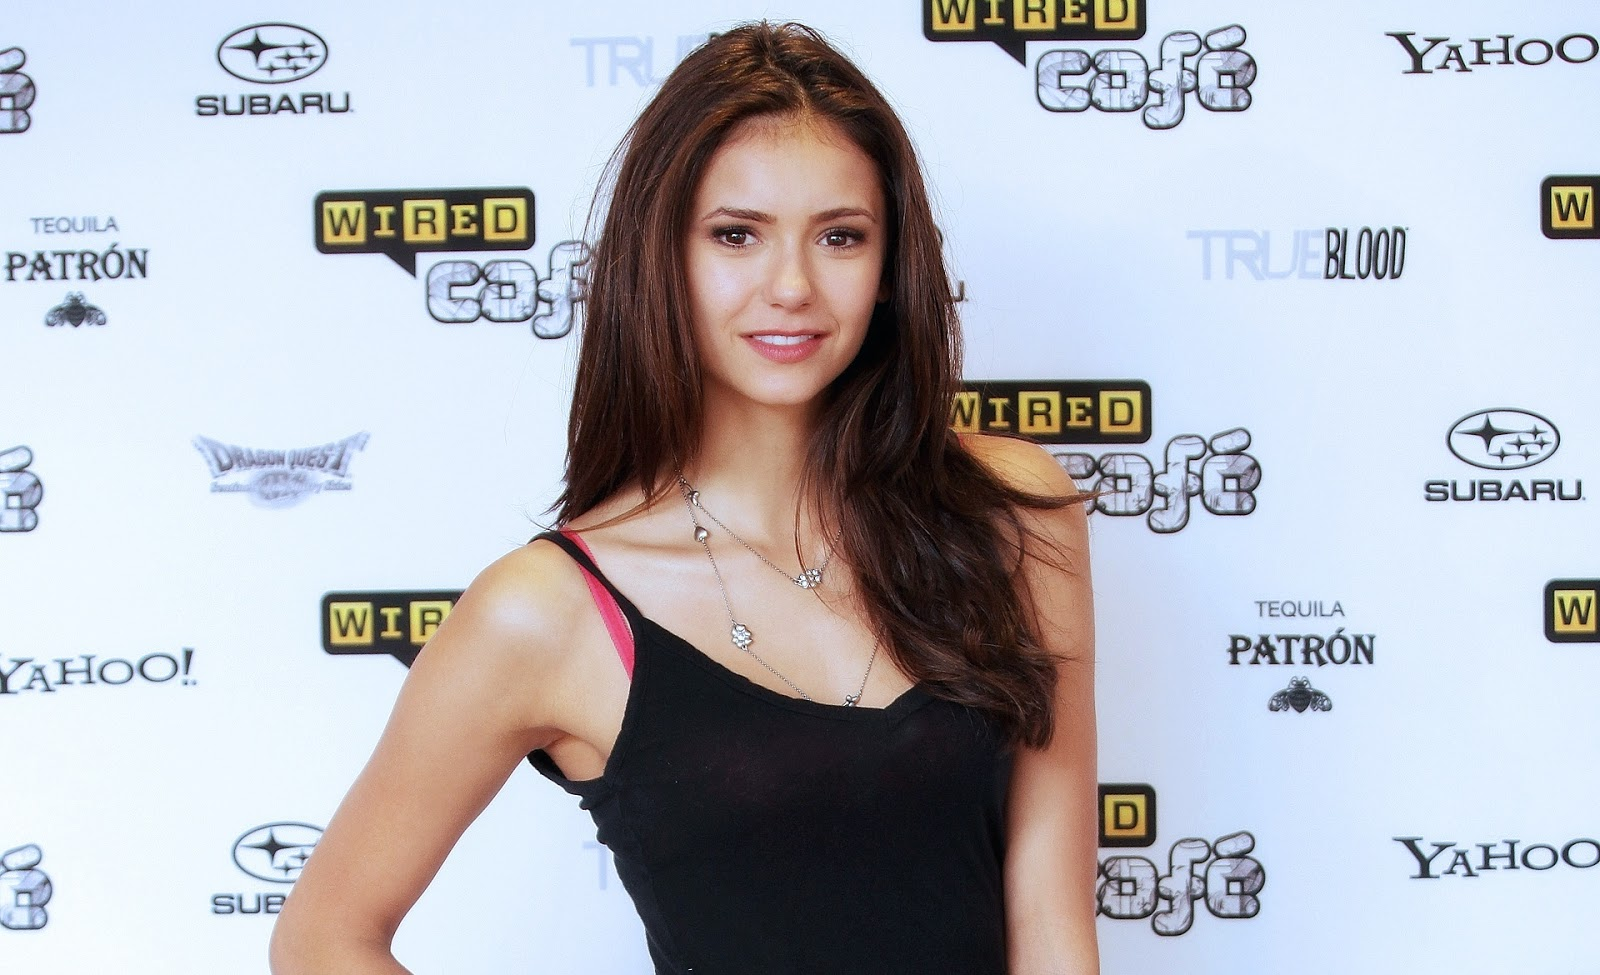 nina dobrev full hd - photo #20